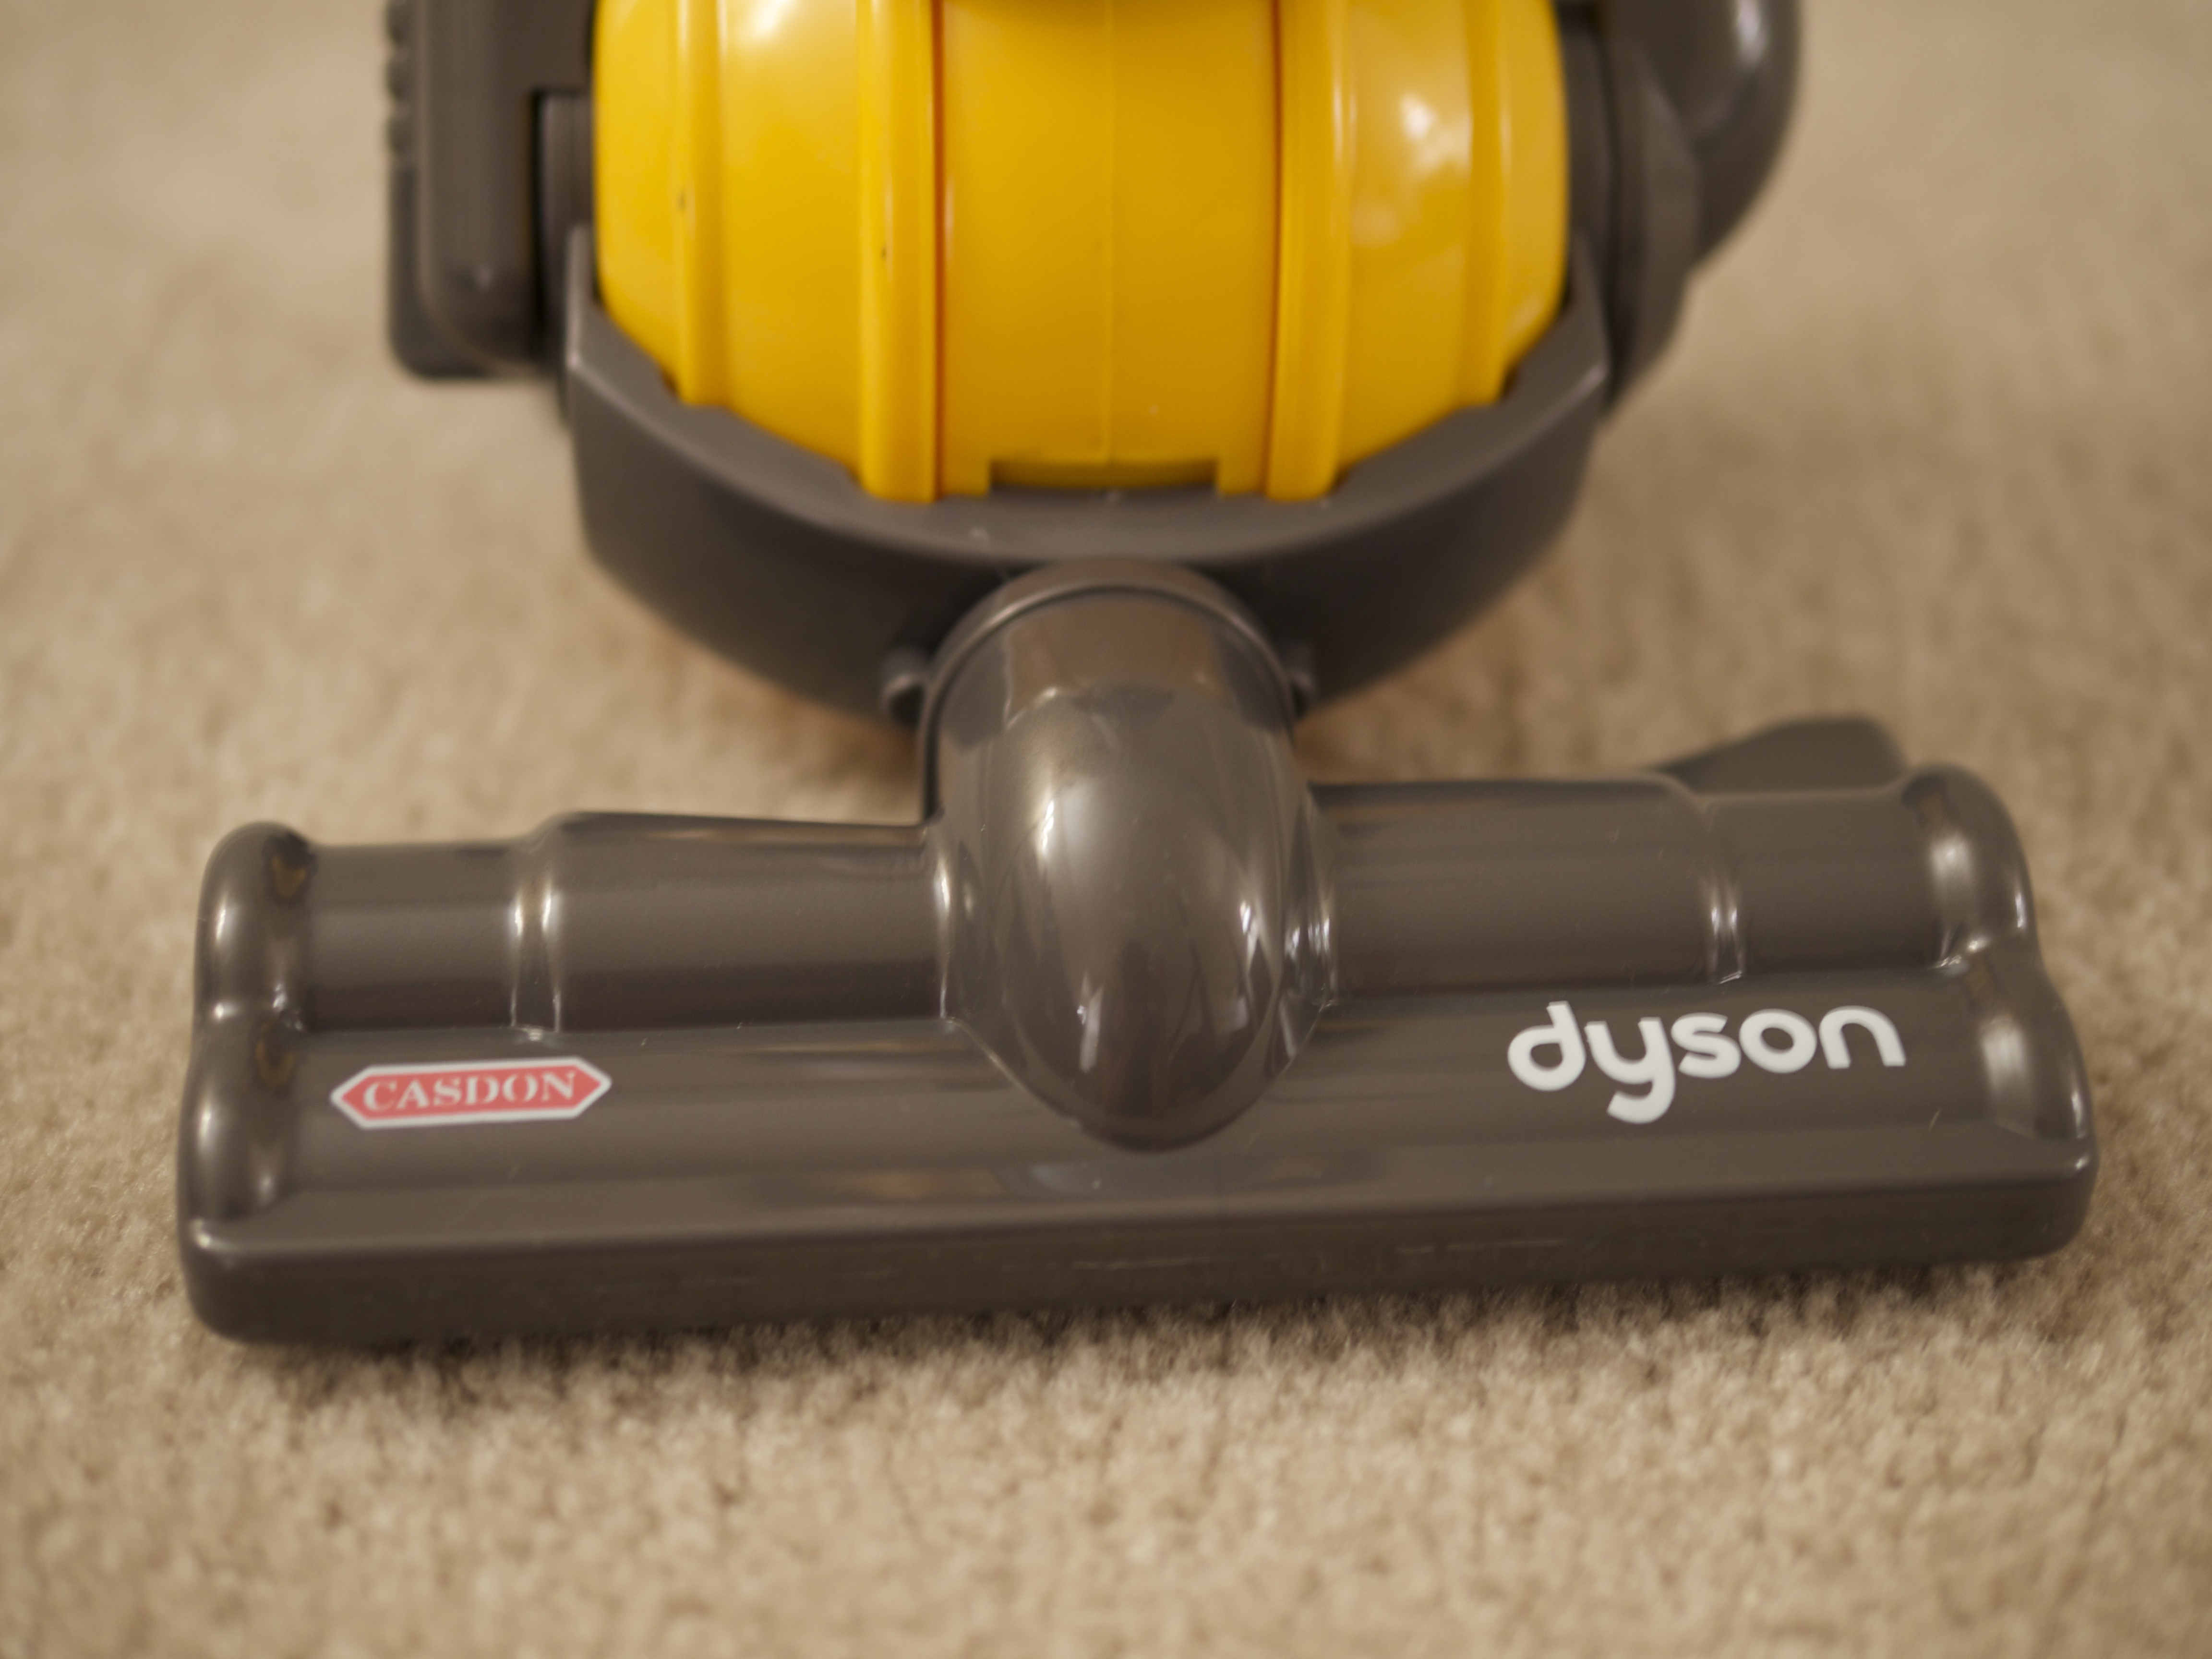 Dyson Ball Vacuum Cleaner Review